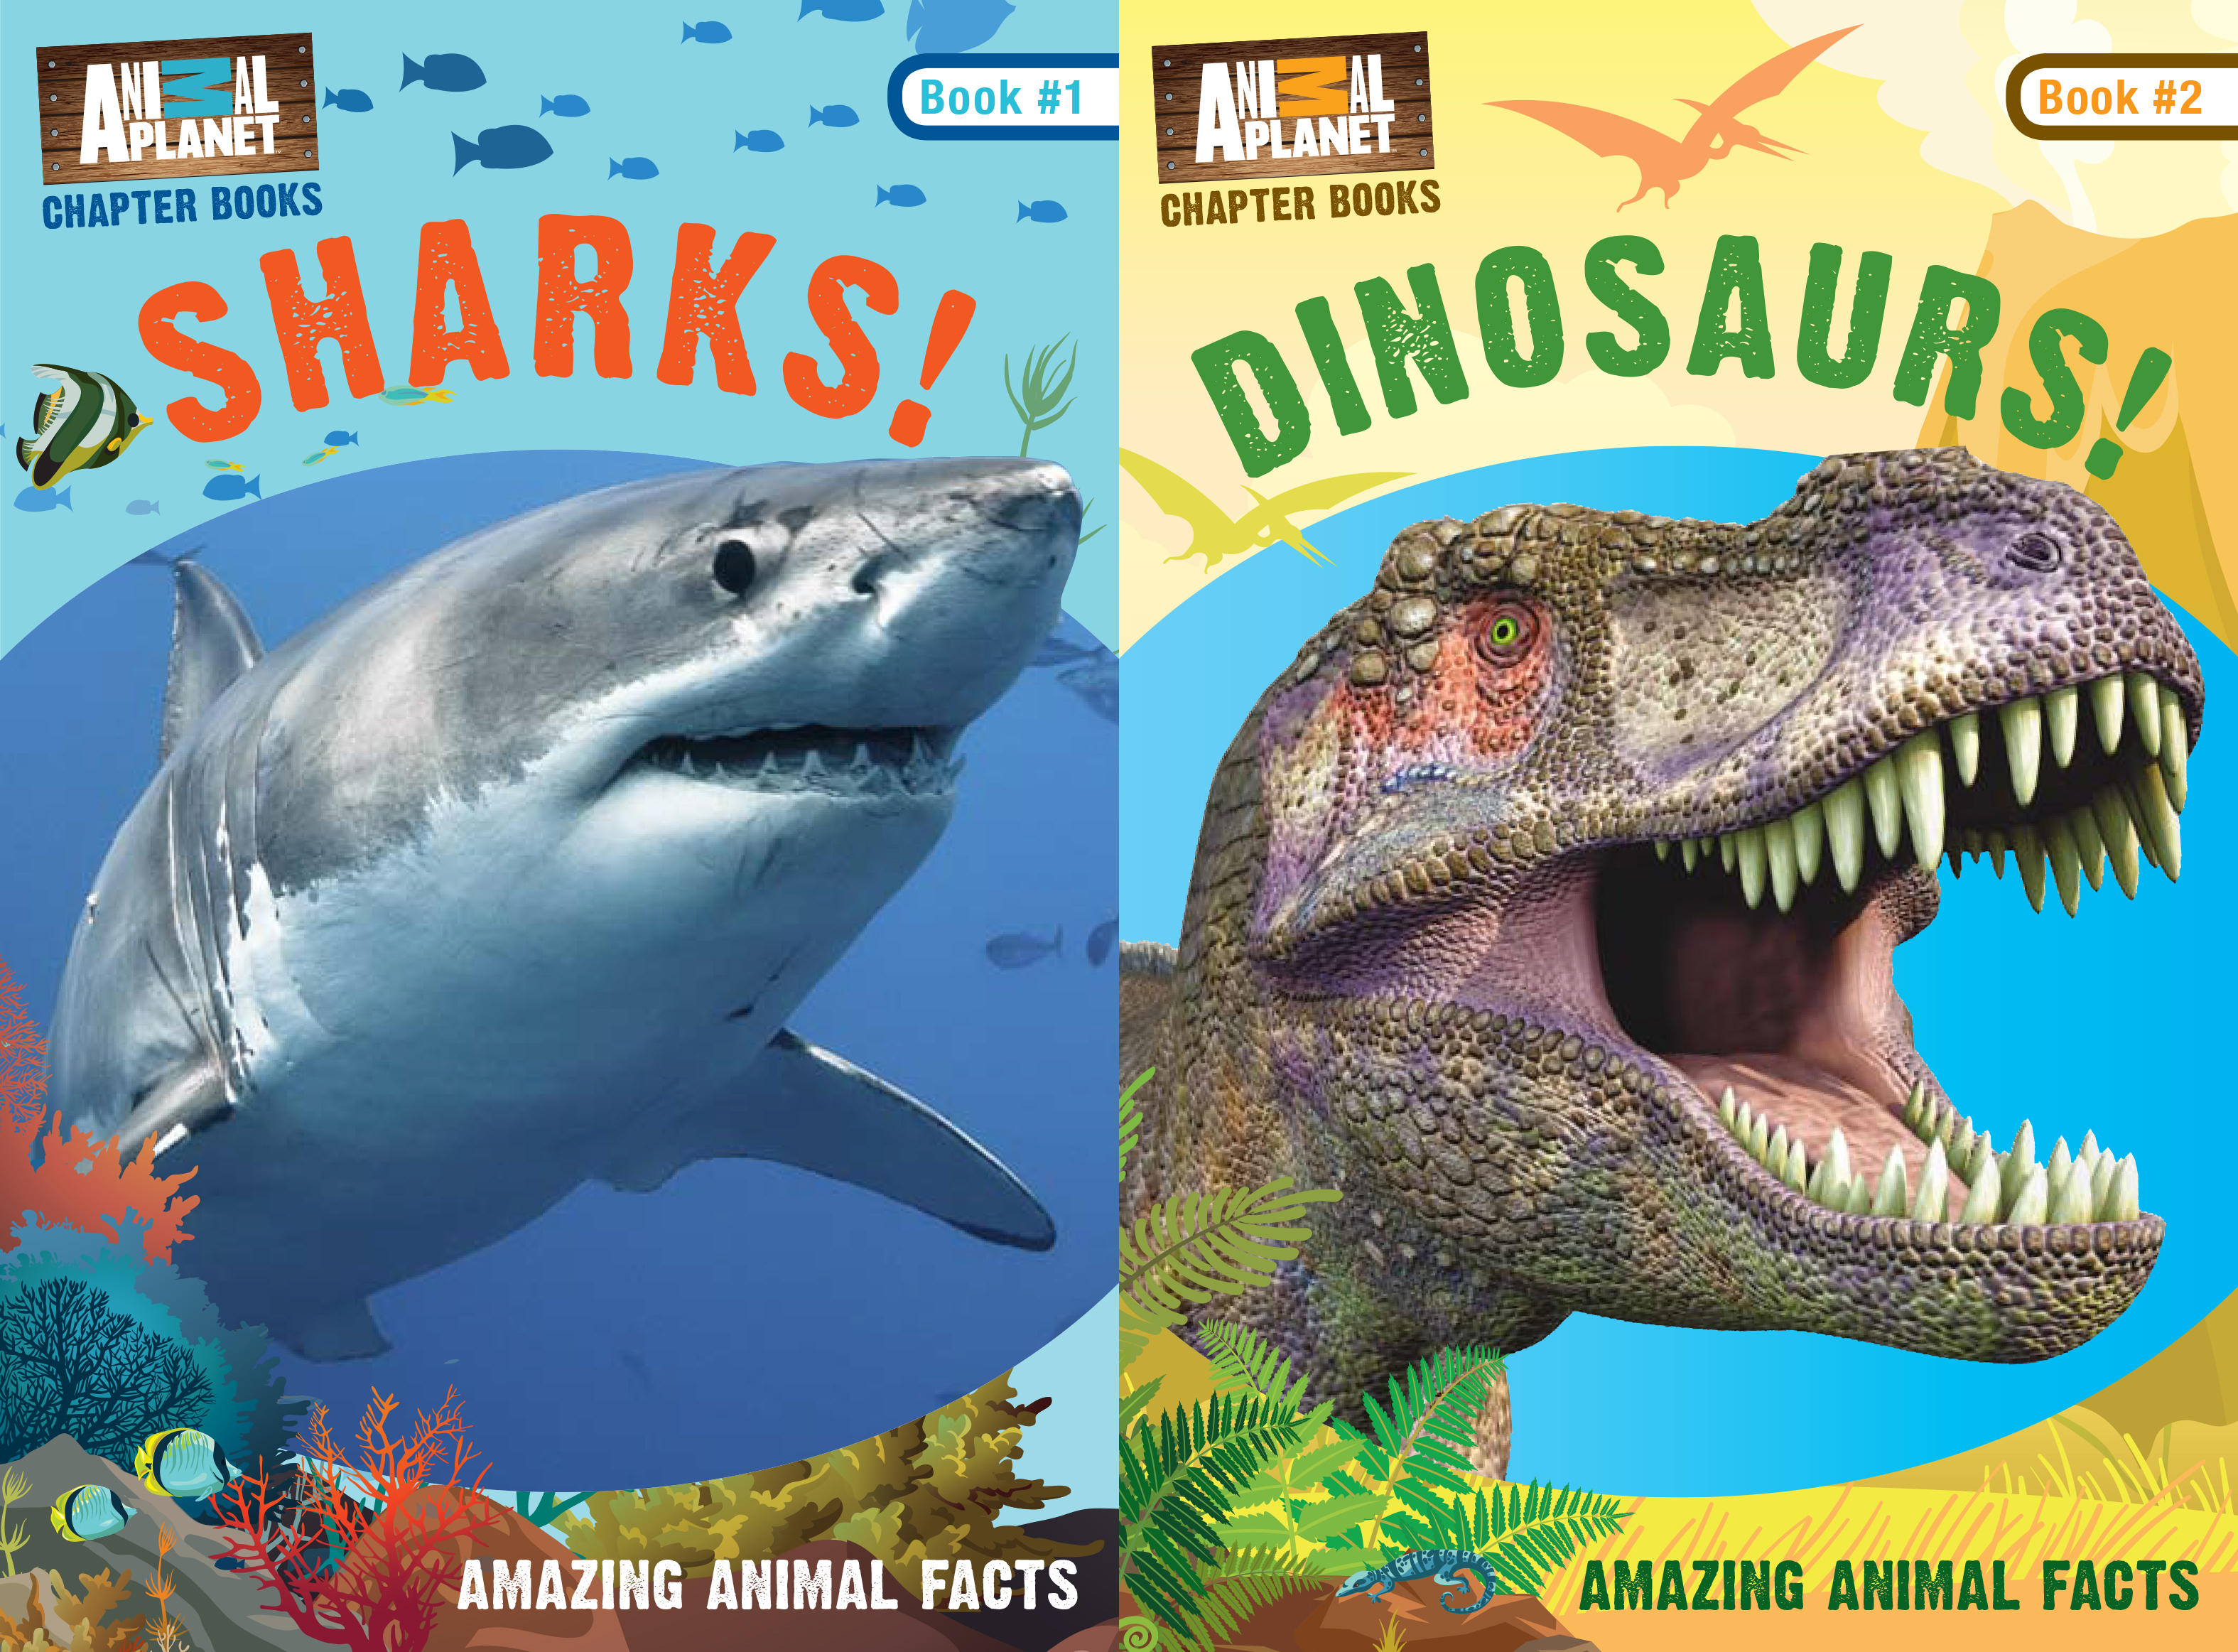 Sharks! and Dinosaurs!